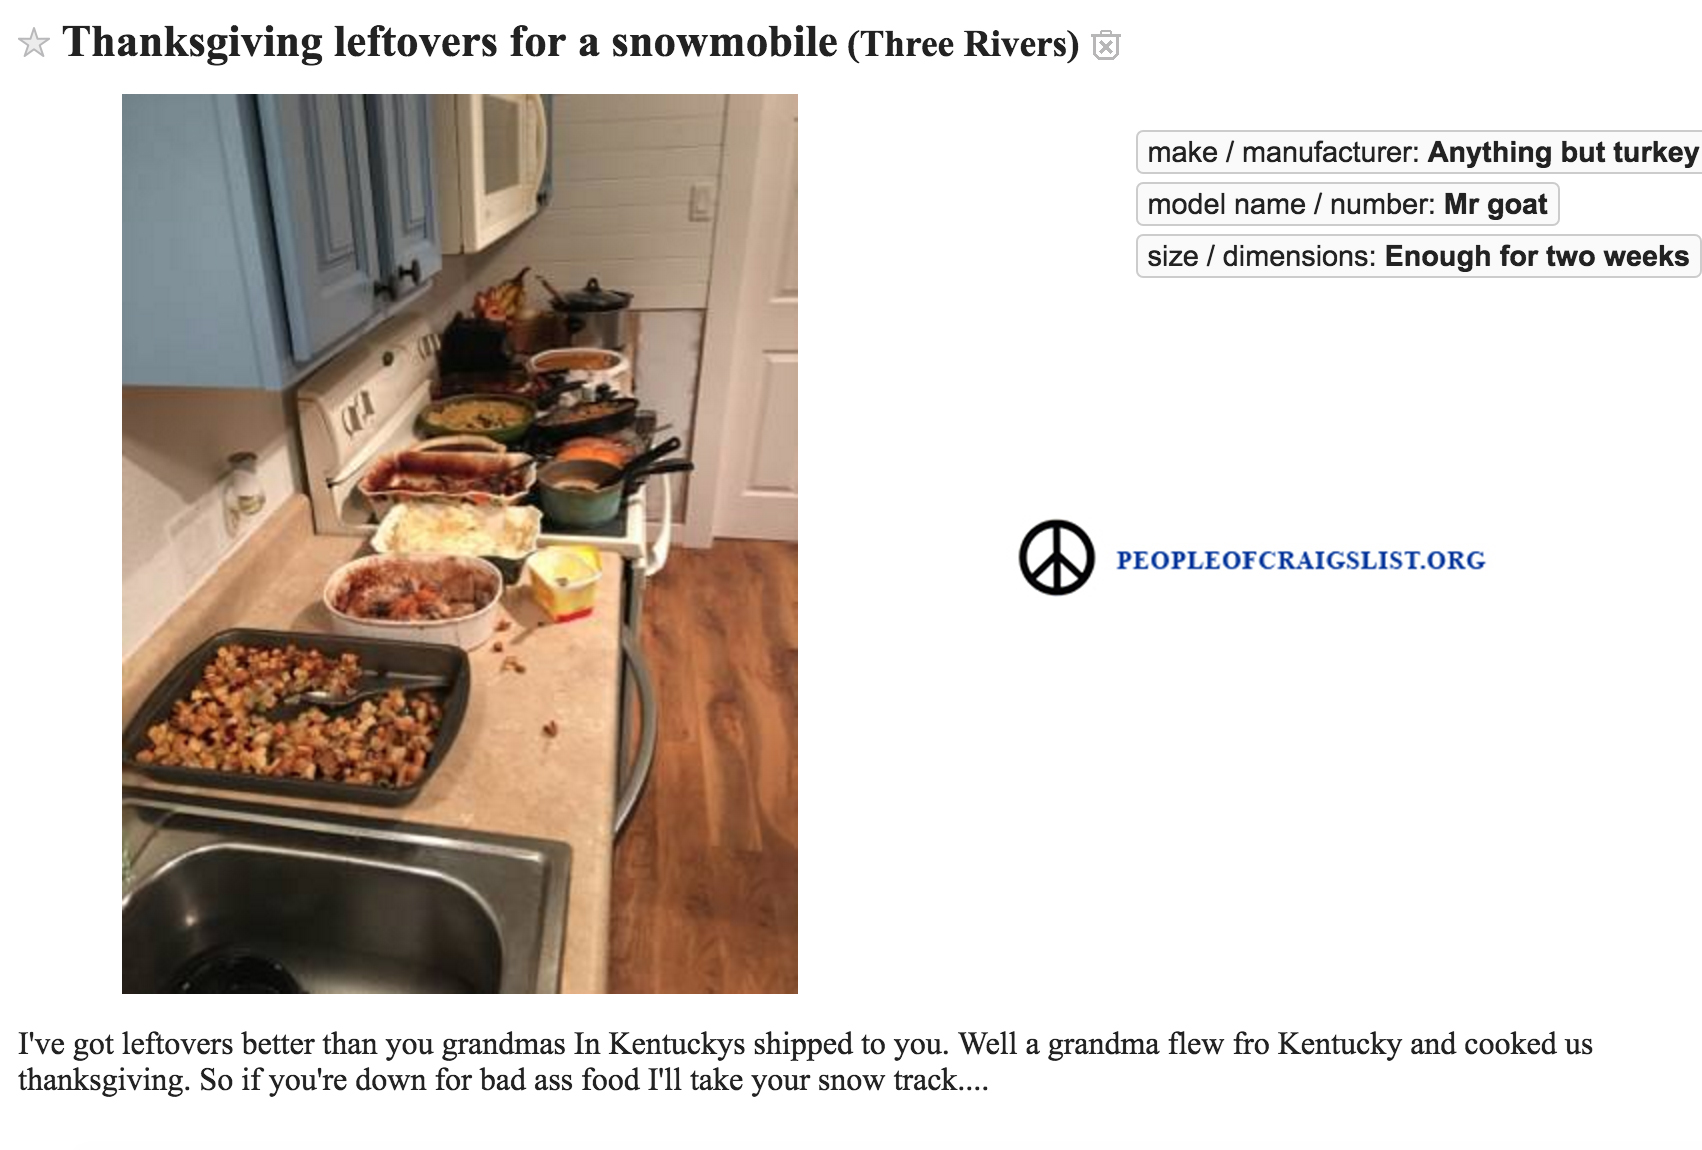 craigslist thanksgiving leftovers